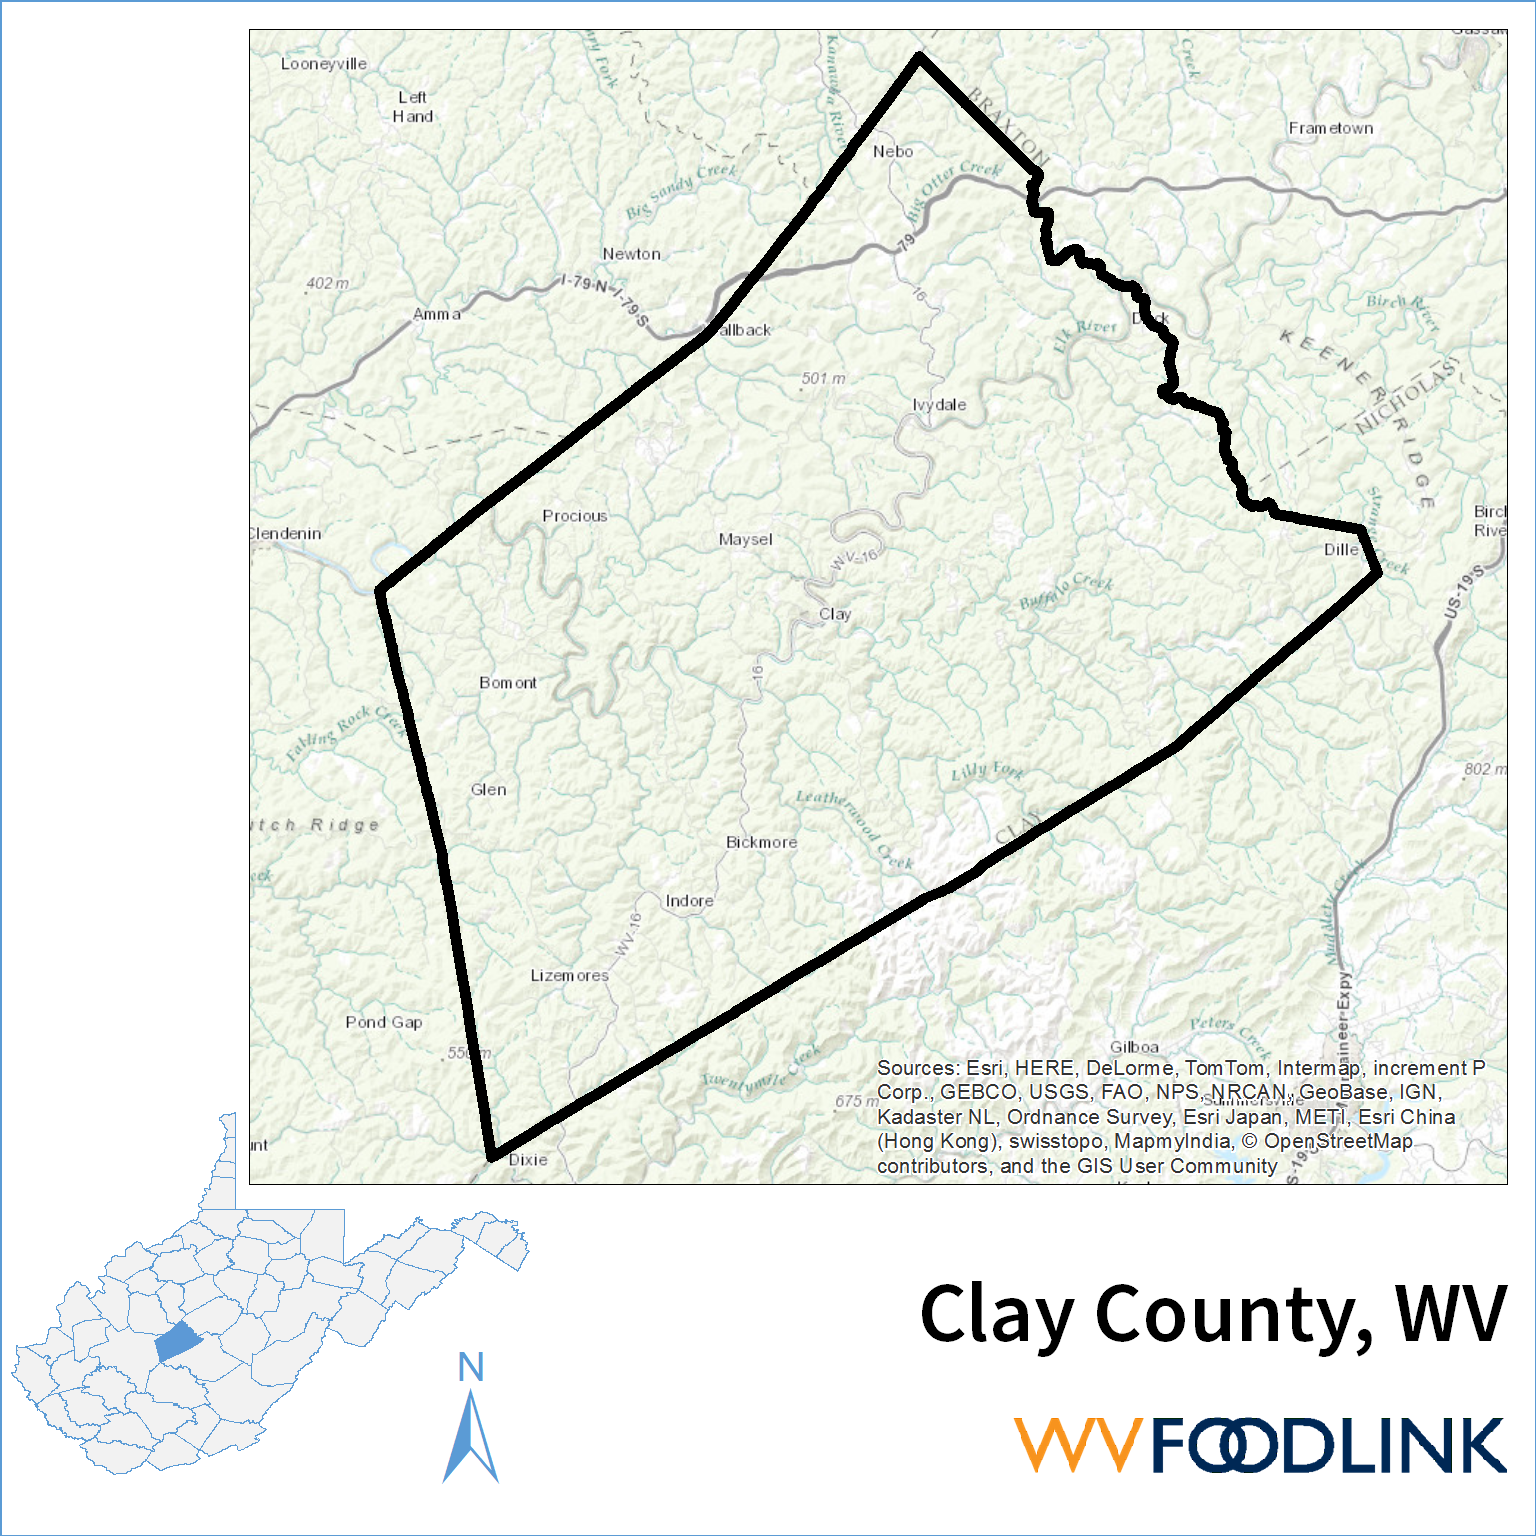 County profile page wv foodlink publicscrutiny Choice Image